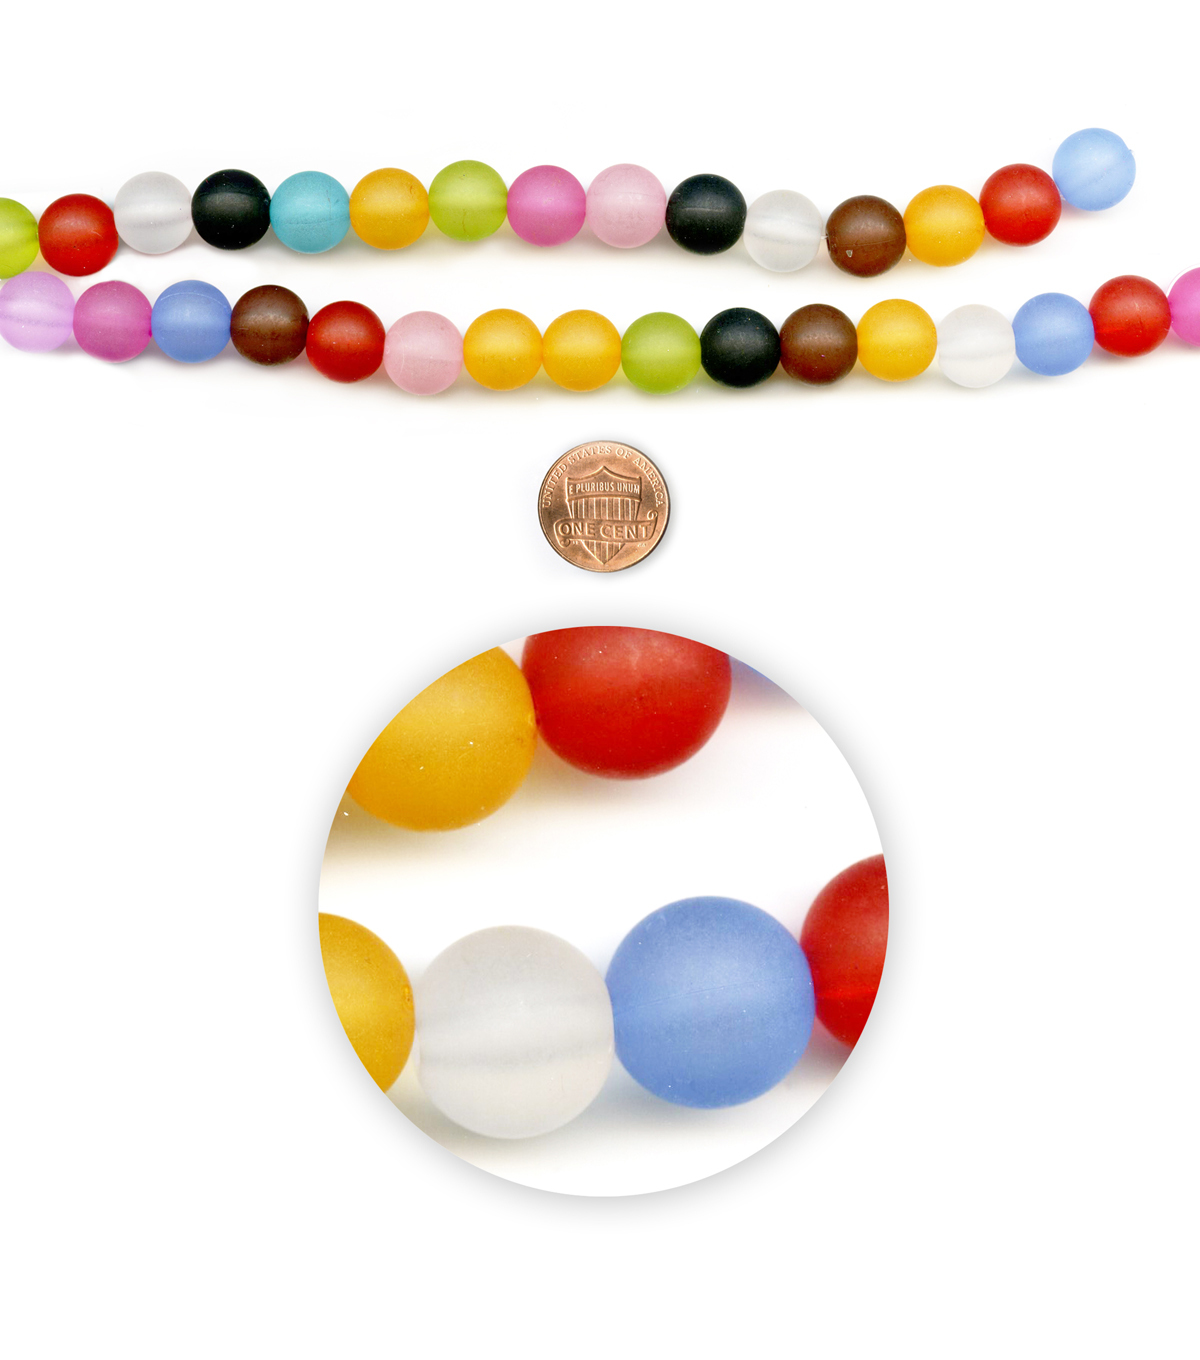 Blue Moon Beads 14\u0022 Strand, Acrylic Frosted Rounds, Multi-Color